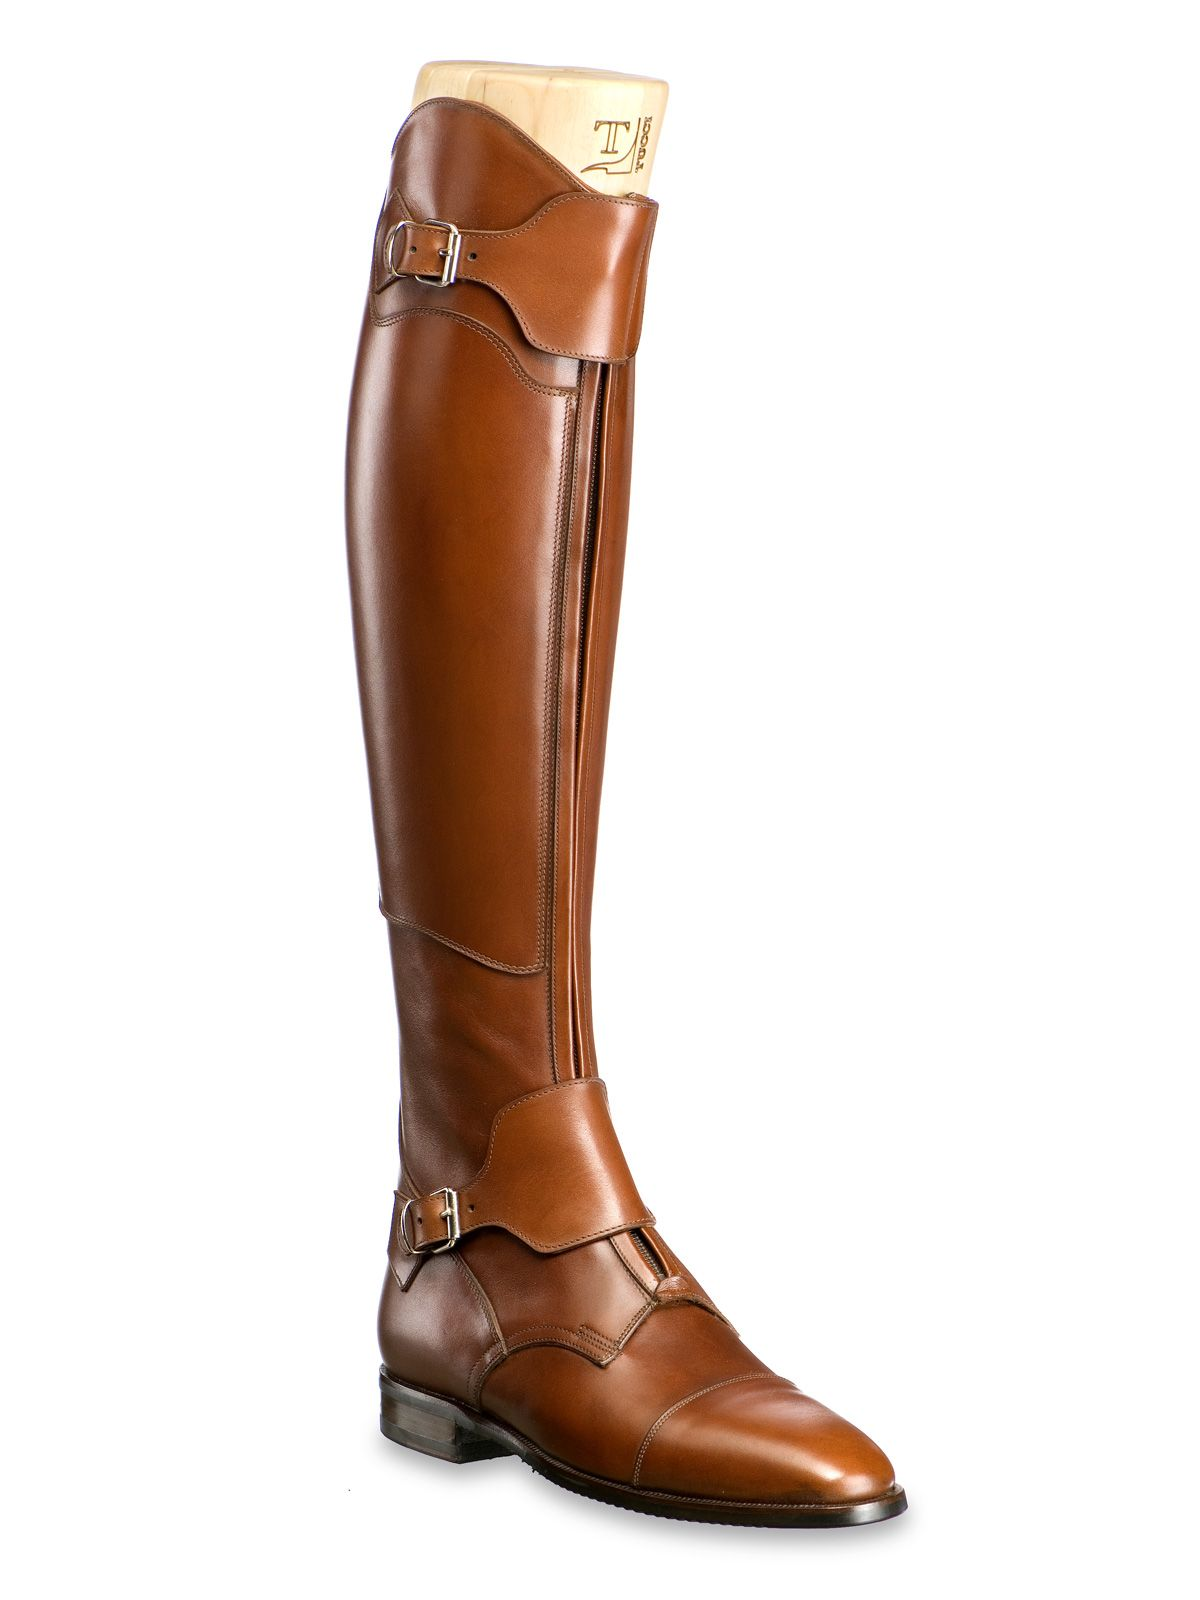 193b83c3e Gucci Polo Boot - Great for everyday riding or everyday style ...